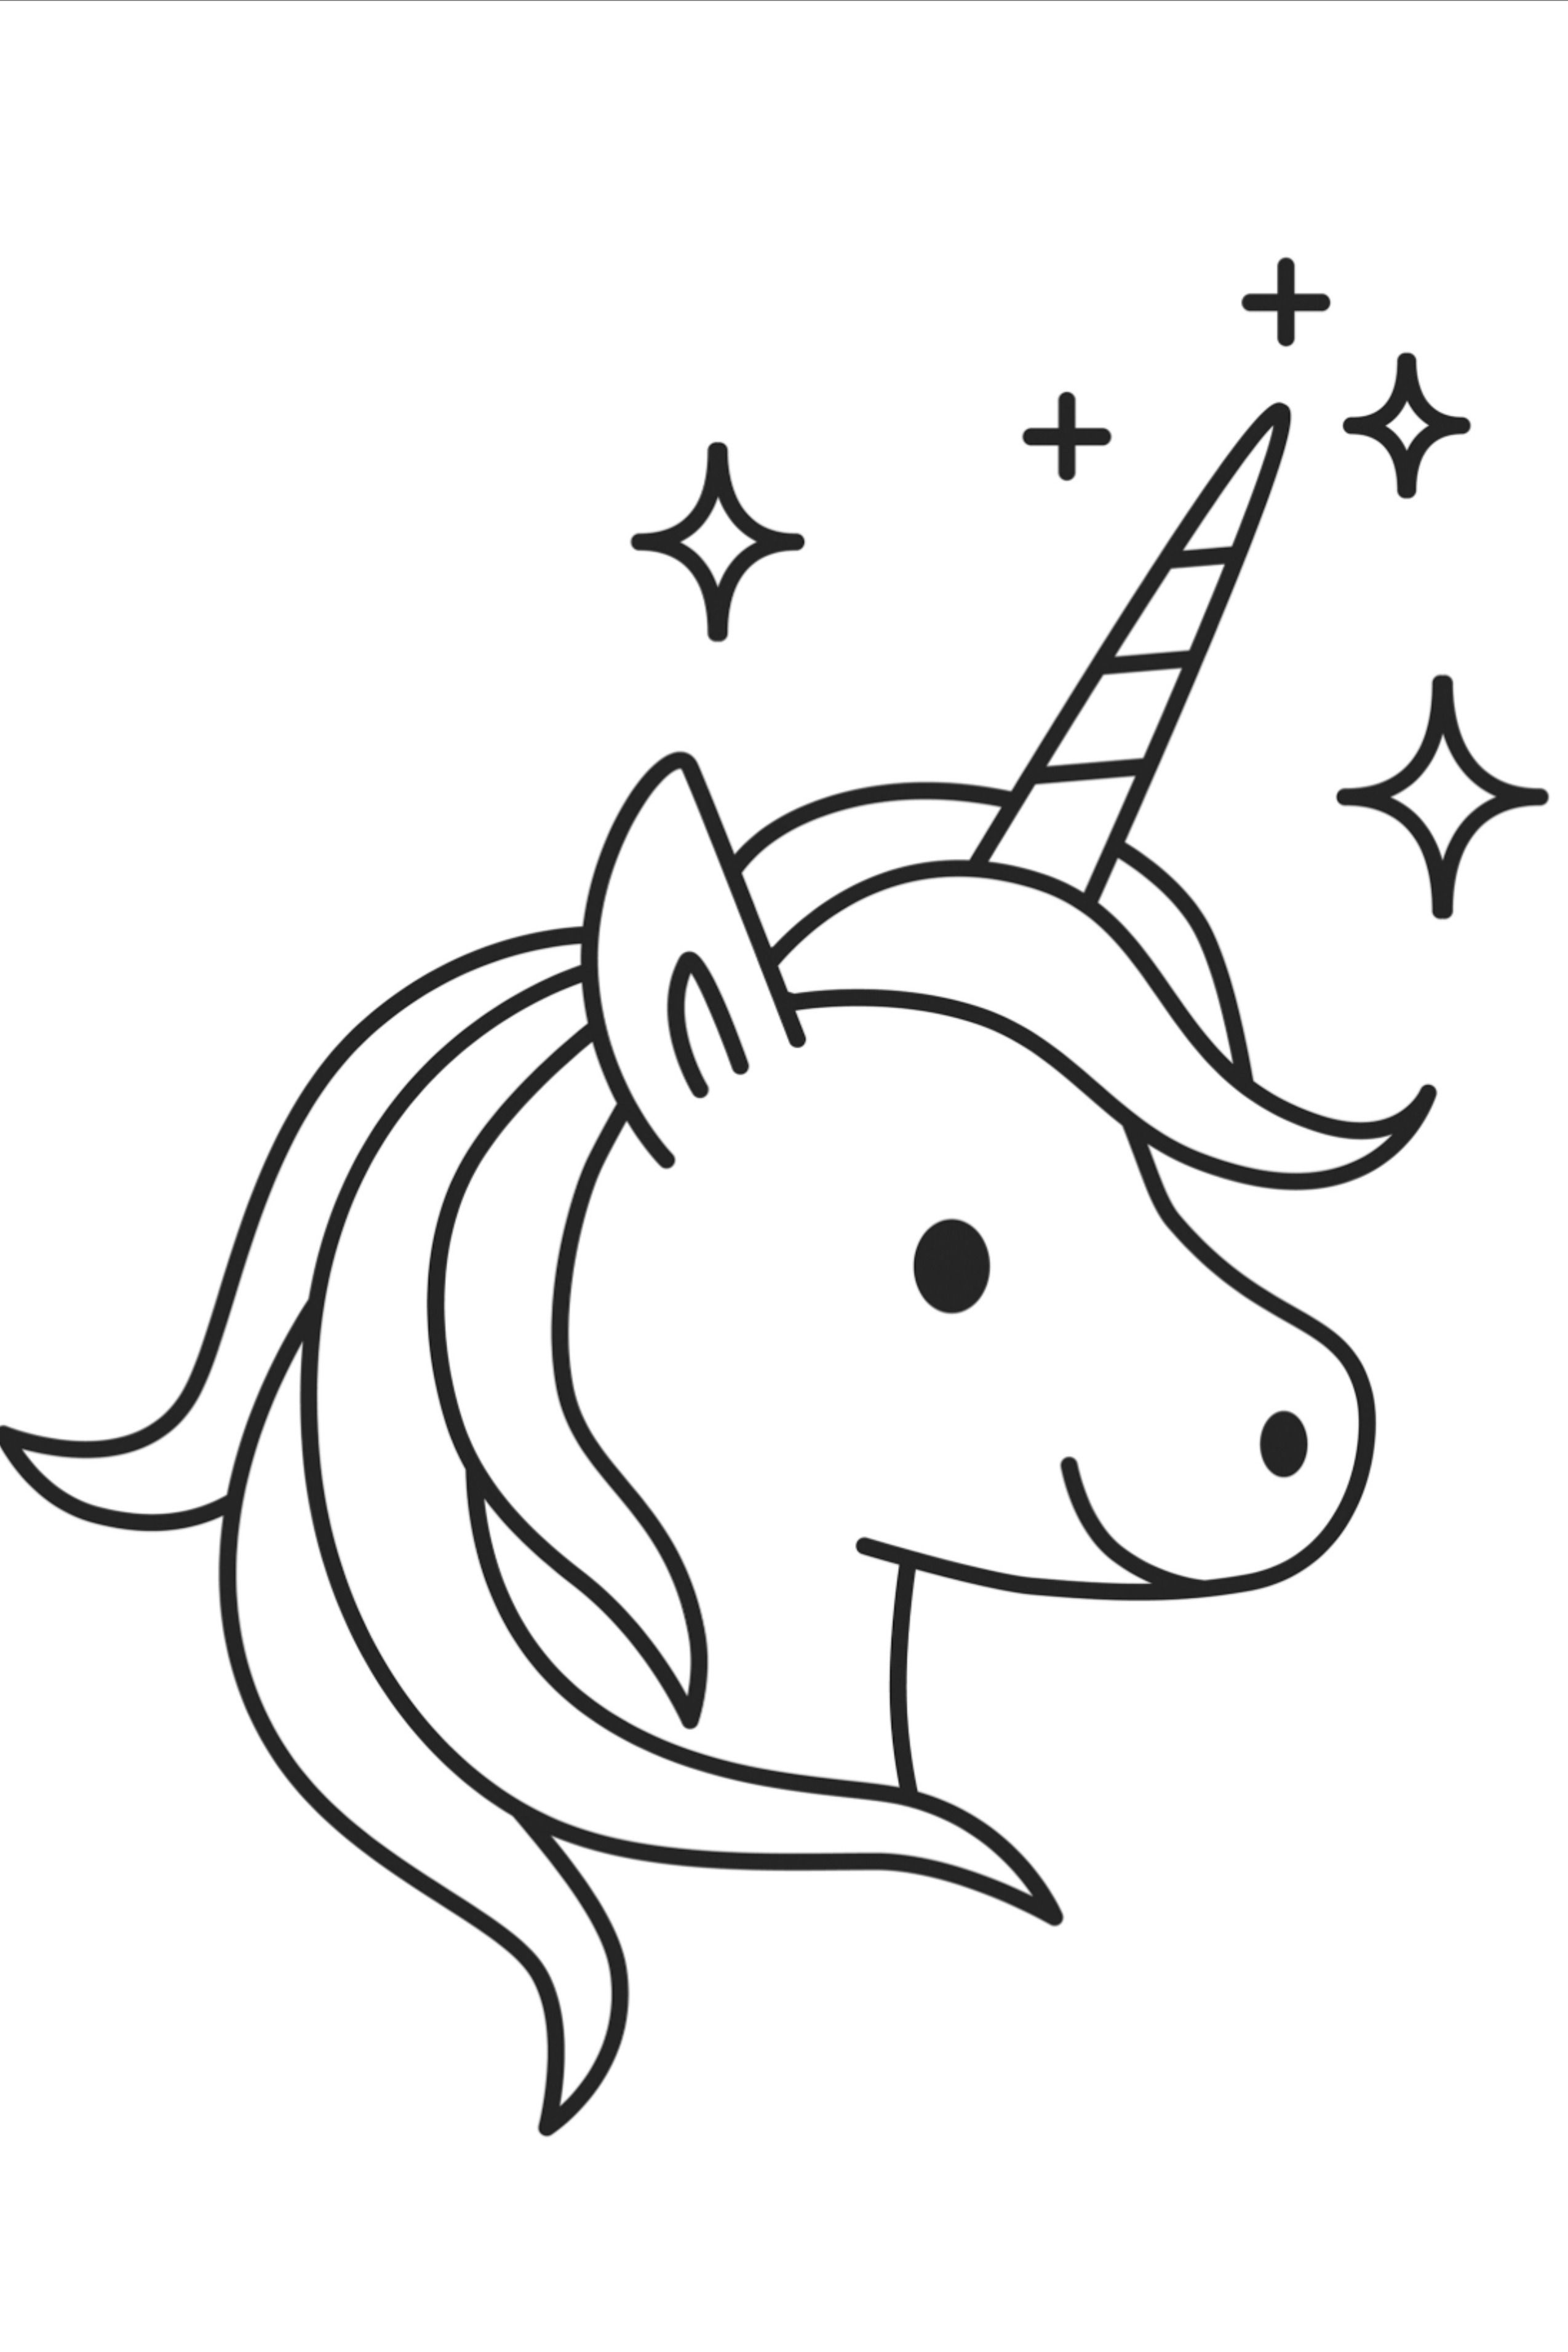 100 Unicorn Coloring Pages For Kids Unicorn Coloring Pages Unicorn Drawing Easy Drawings